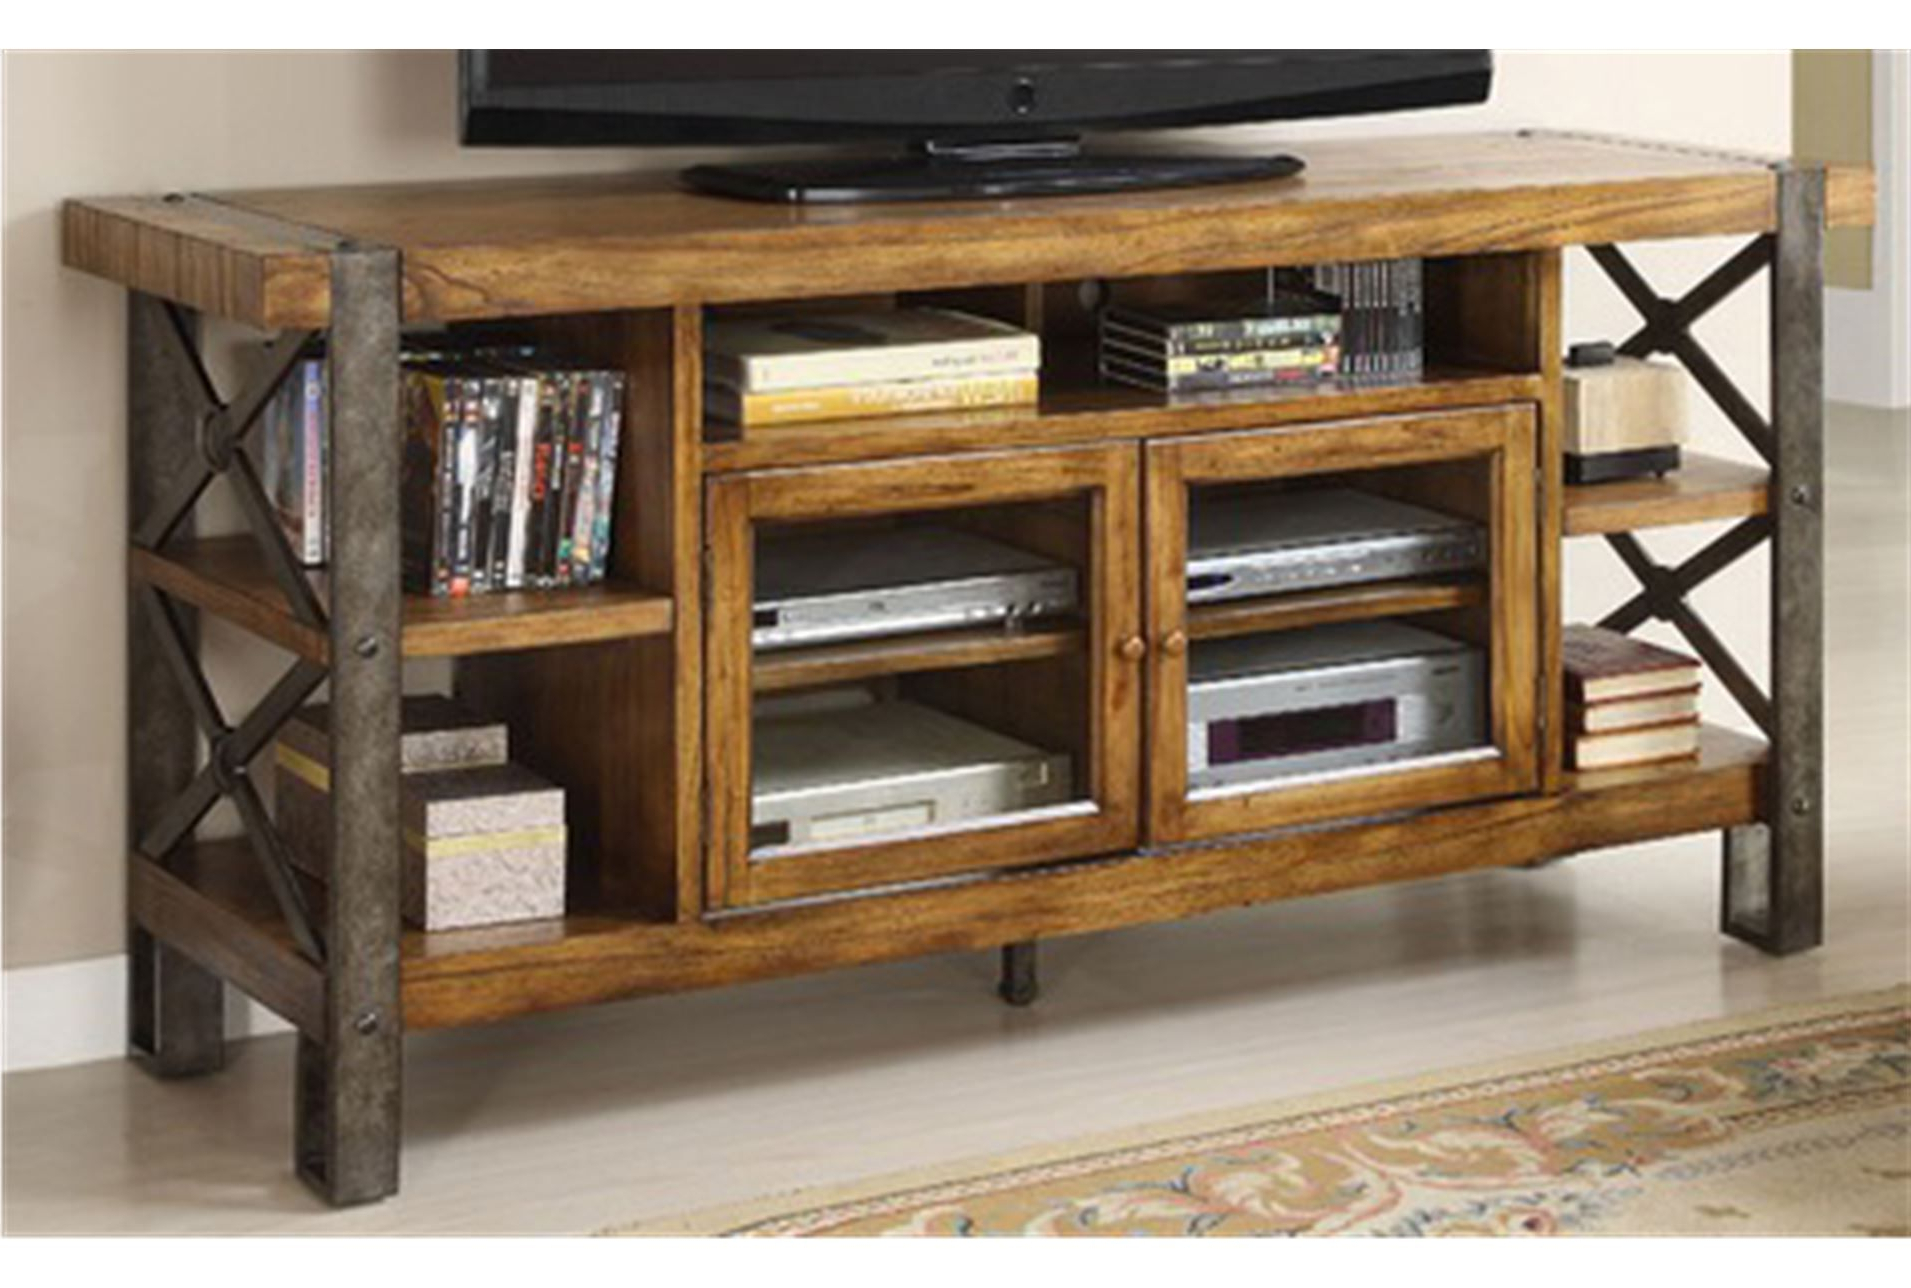 Marley 68 Inch Tv Console | Dos Lagos/ Re/max | Pinterest | Tvs Regarding Sinclair White 68 Inch Tv Stands (View 19 of 20)